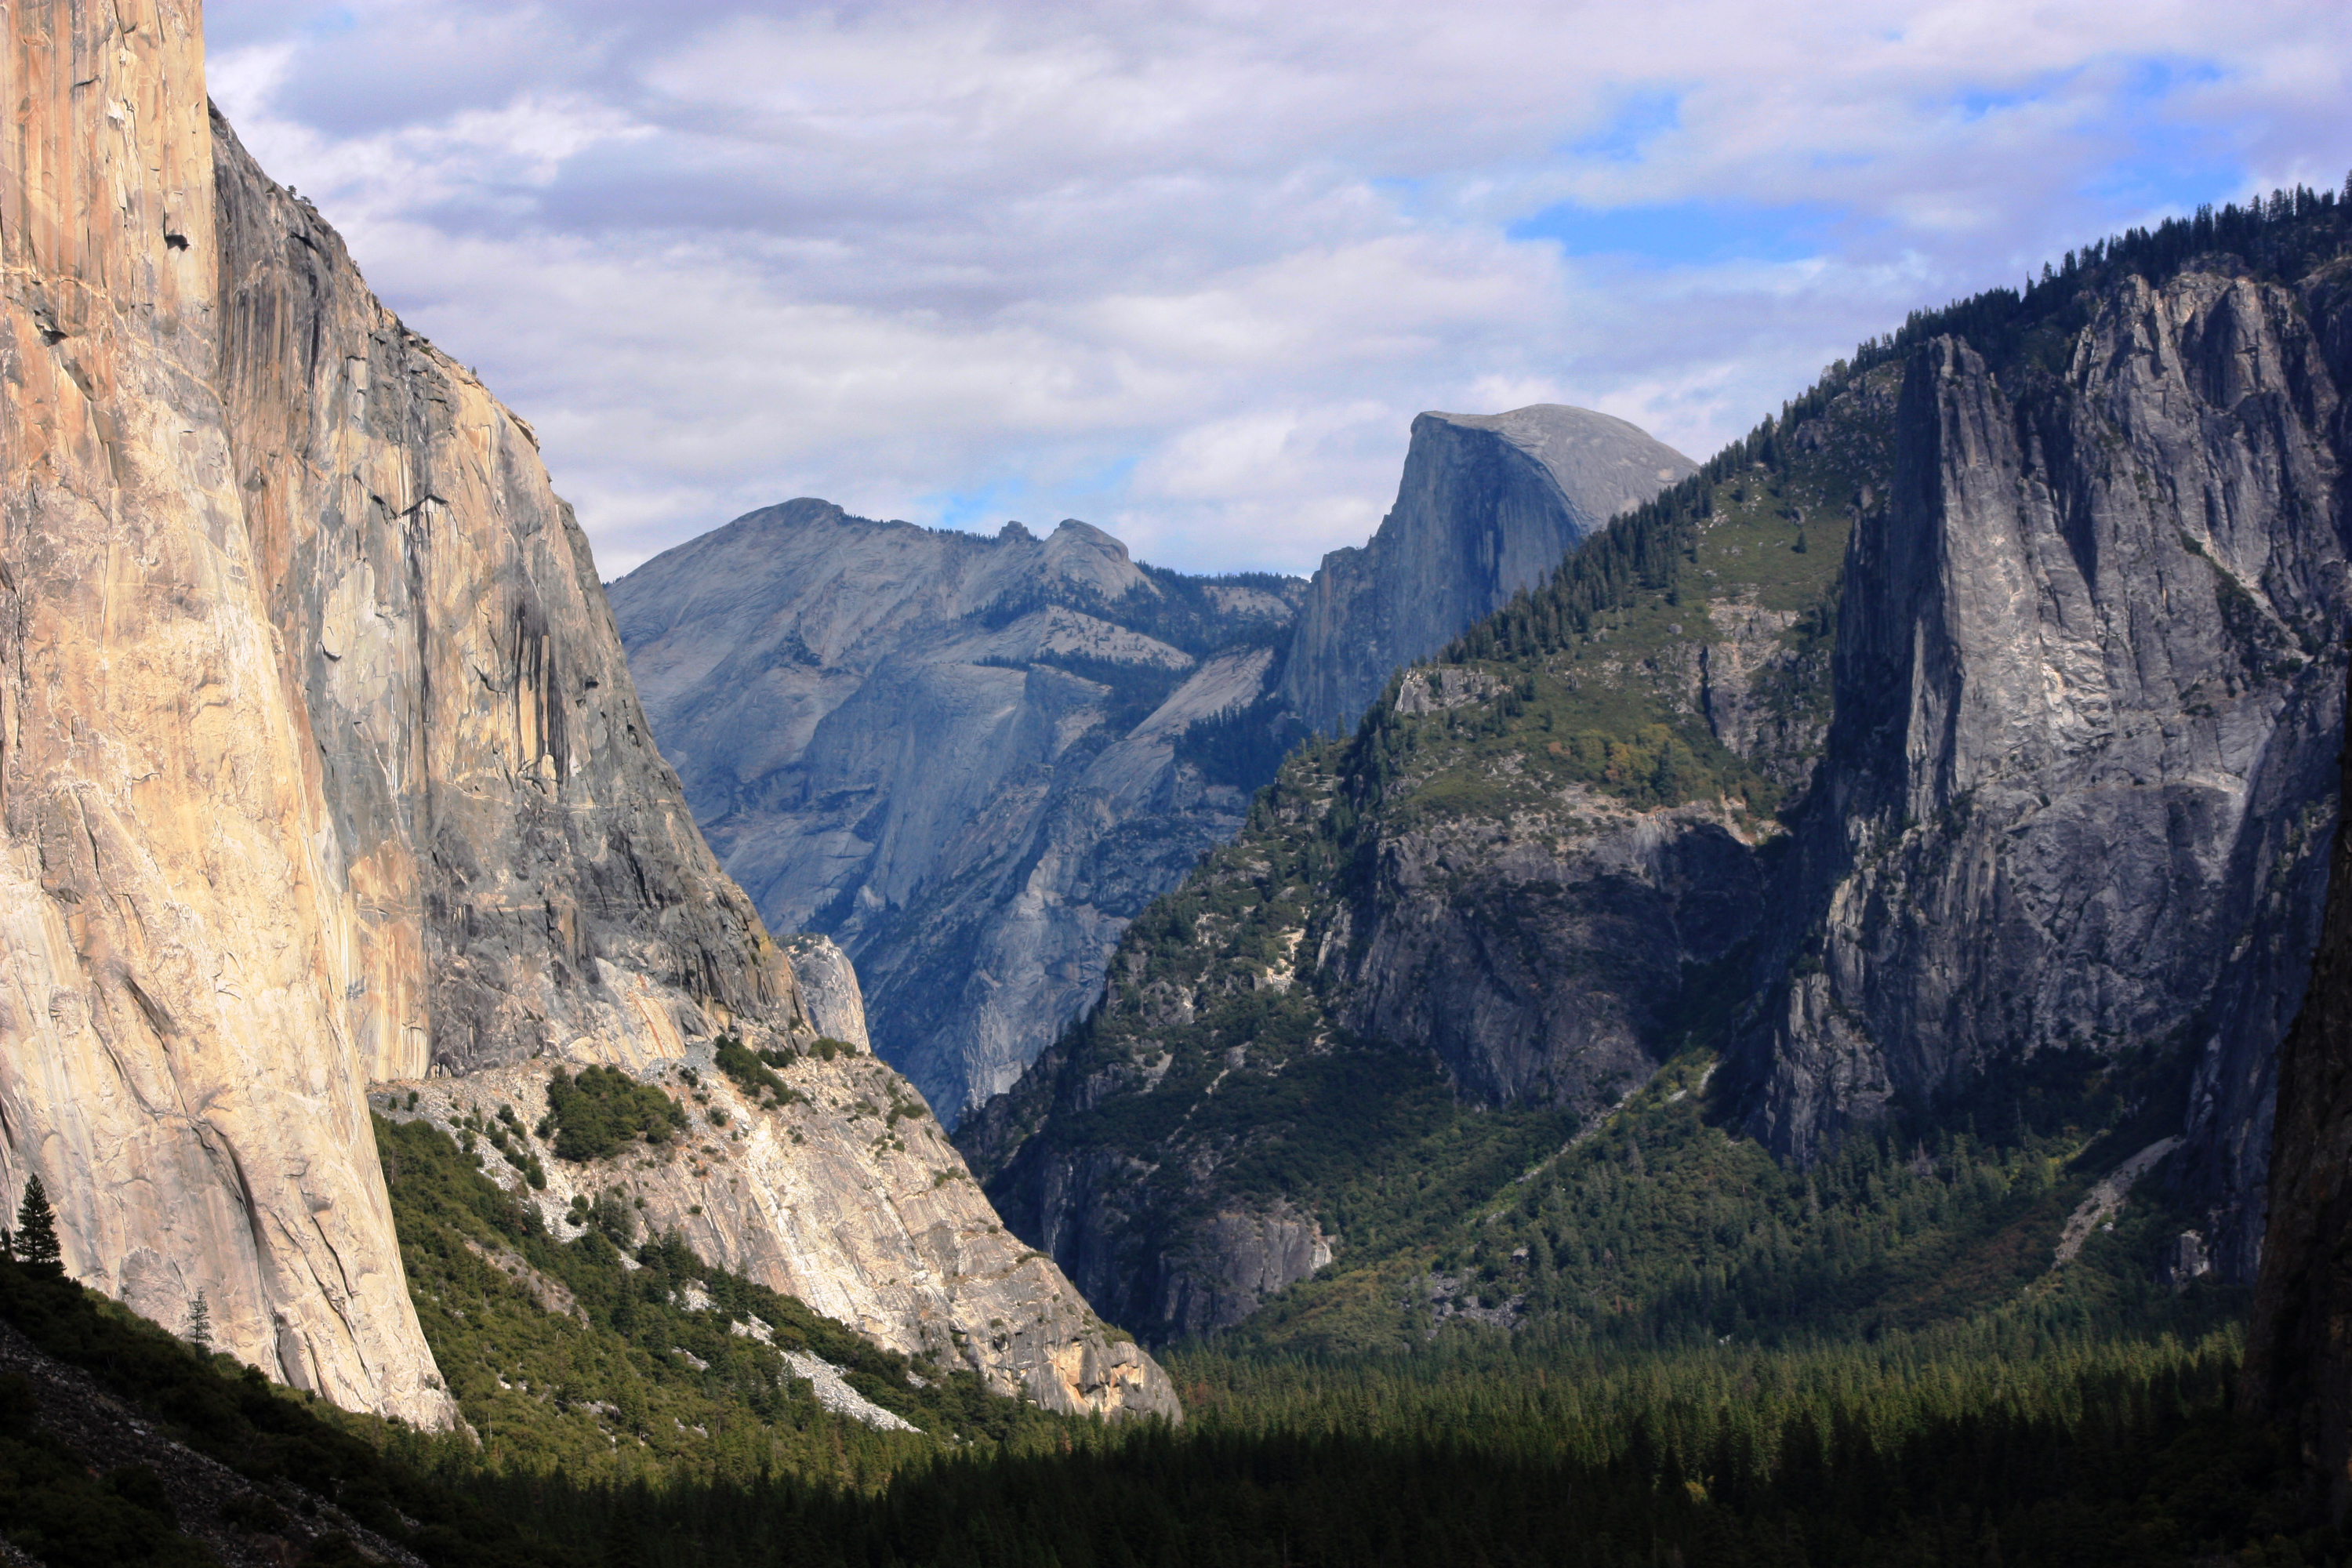 This Oct. 2, 2013, file photo, shows a view seen on the way to Glacier Point trail in the Yosemite National Park, Calif. The National Park Service is floating a proposal to increase entrance fees at 17 of its most popular sites next year. (AP Photo/Tammy Webber, File)<p></p>